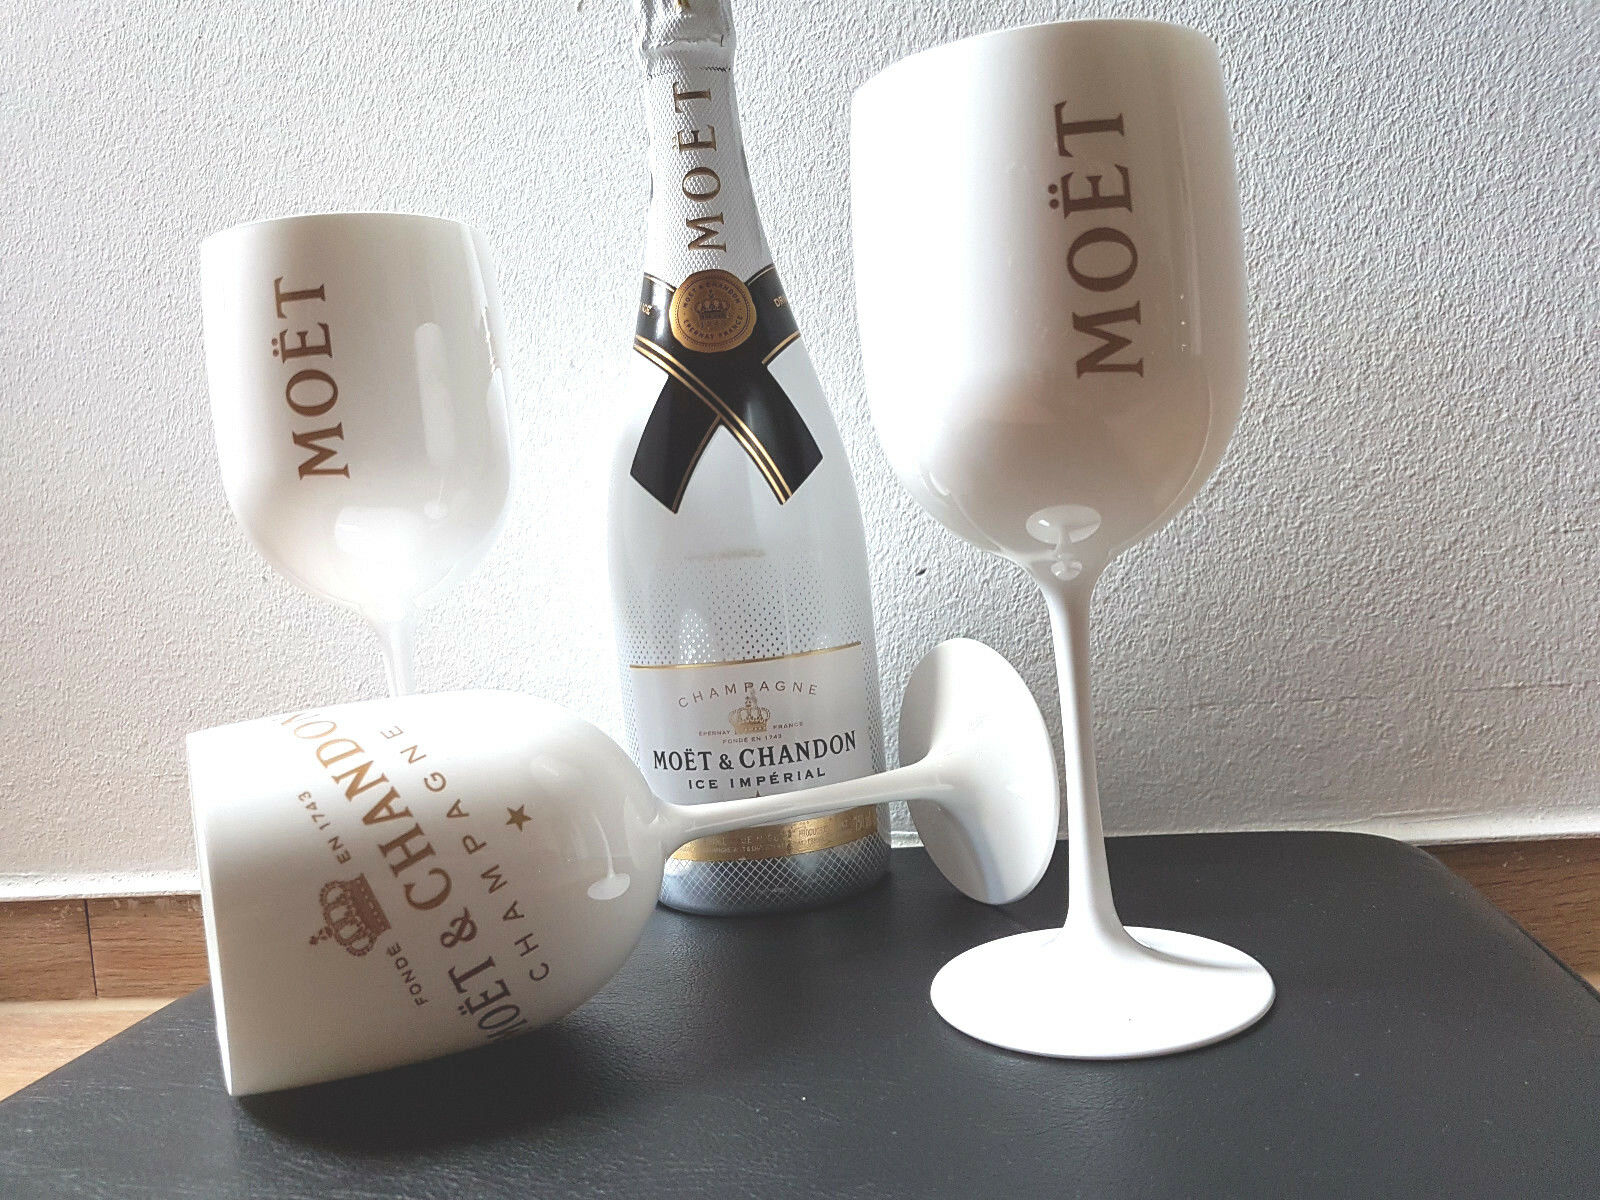 moet chandon ice imperial champagner glas acryl becher limited edition eur 18 99 picclick de. Black Bedroom Furniture Sets. Home Design Ideas